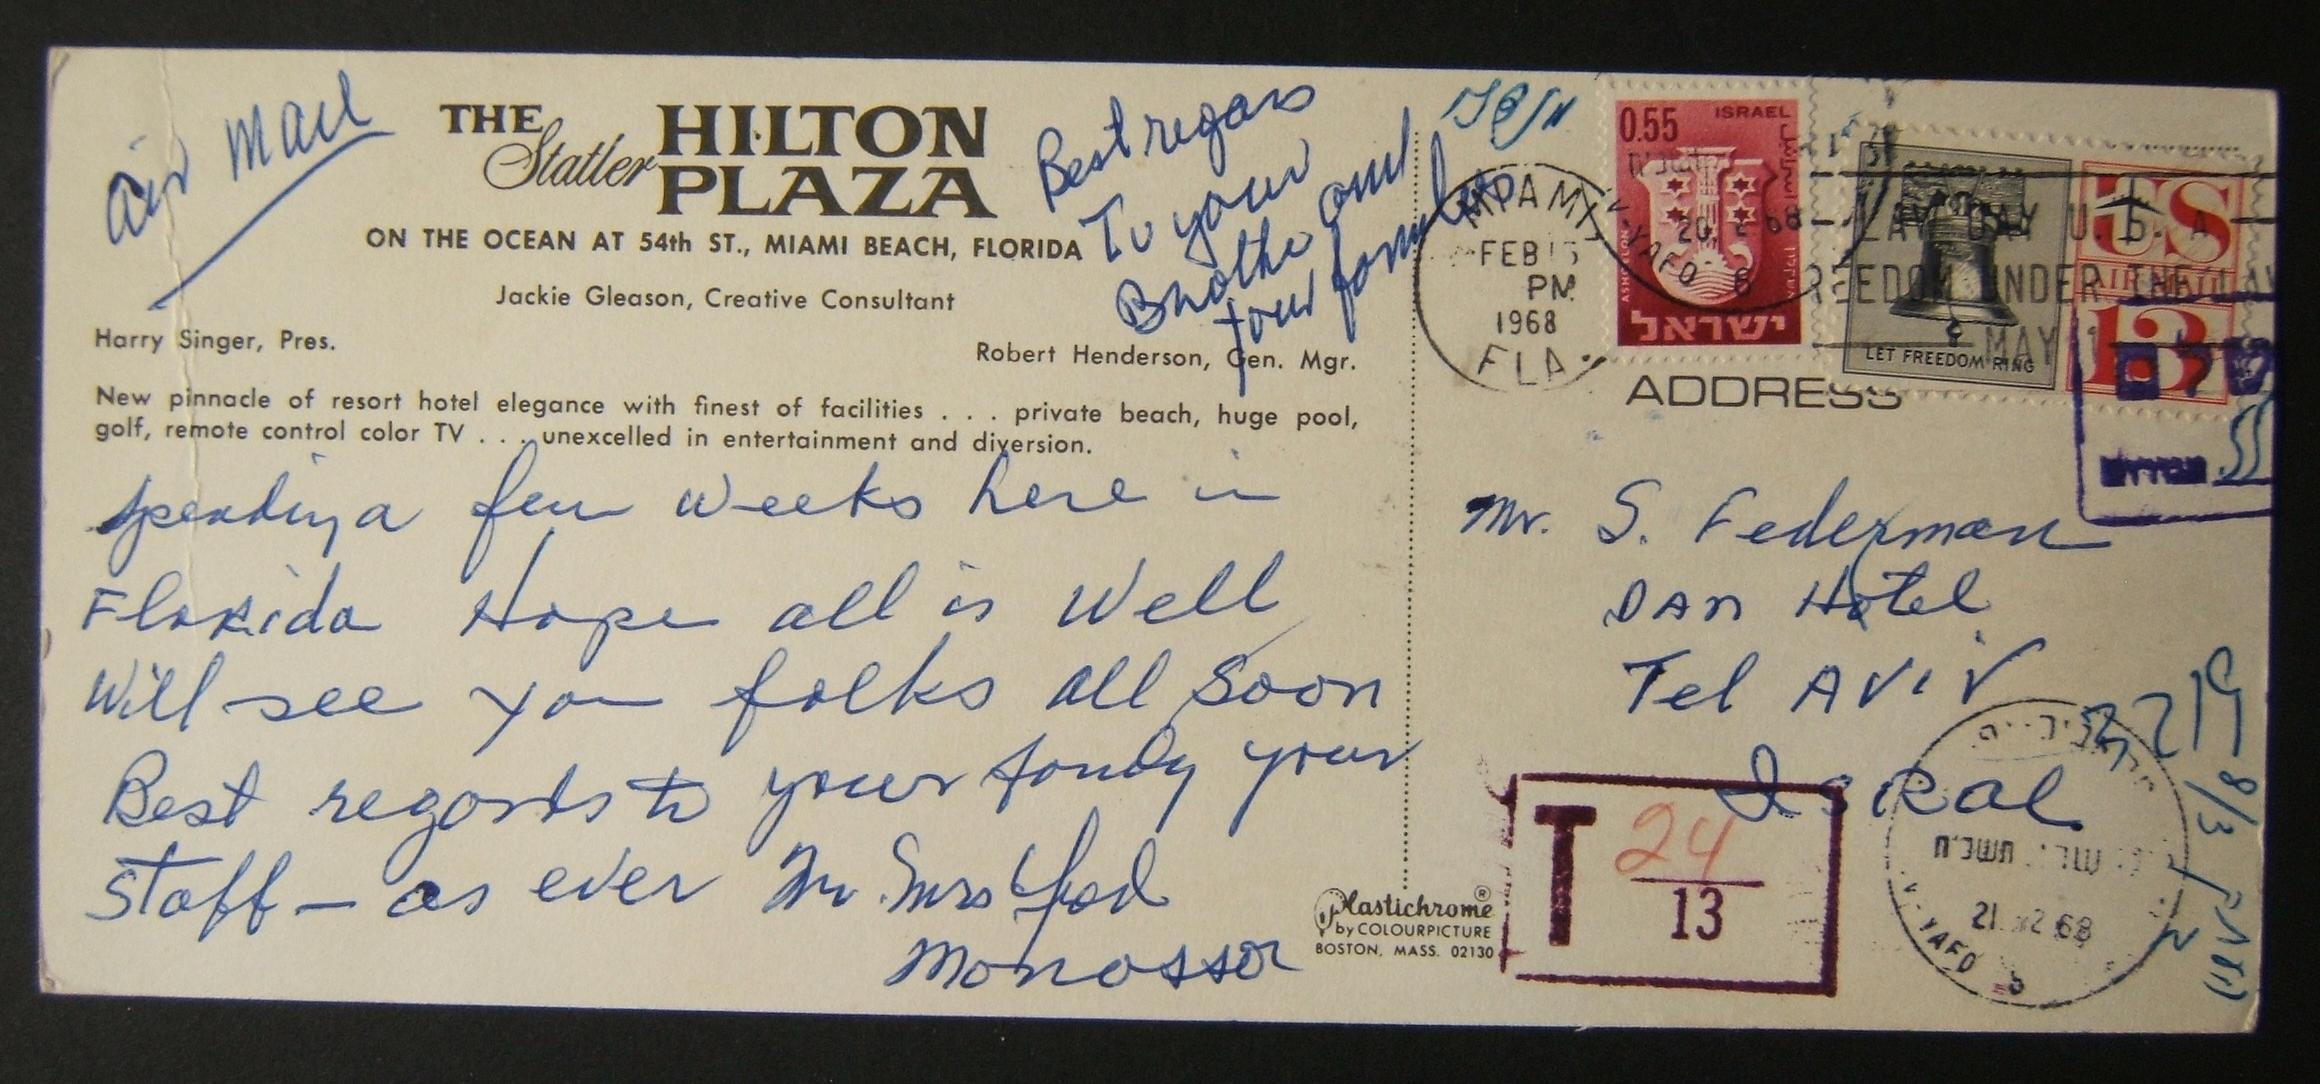 1968 incoming US taxed mail: FEB 15 '68 airmail ppc of Jackie Gleason/Hilton Plaza ex MIAMI to TLV underfranked at $0.13 and taxed in Israel 0.55L using 1965/67 1st Town Emblems Ba